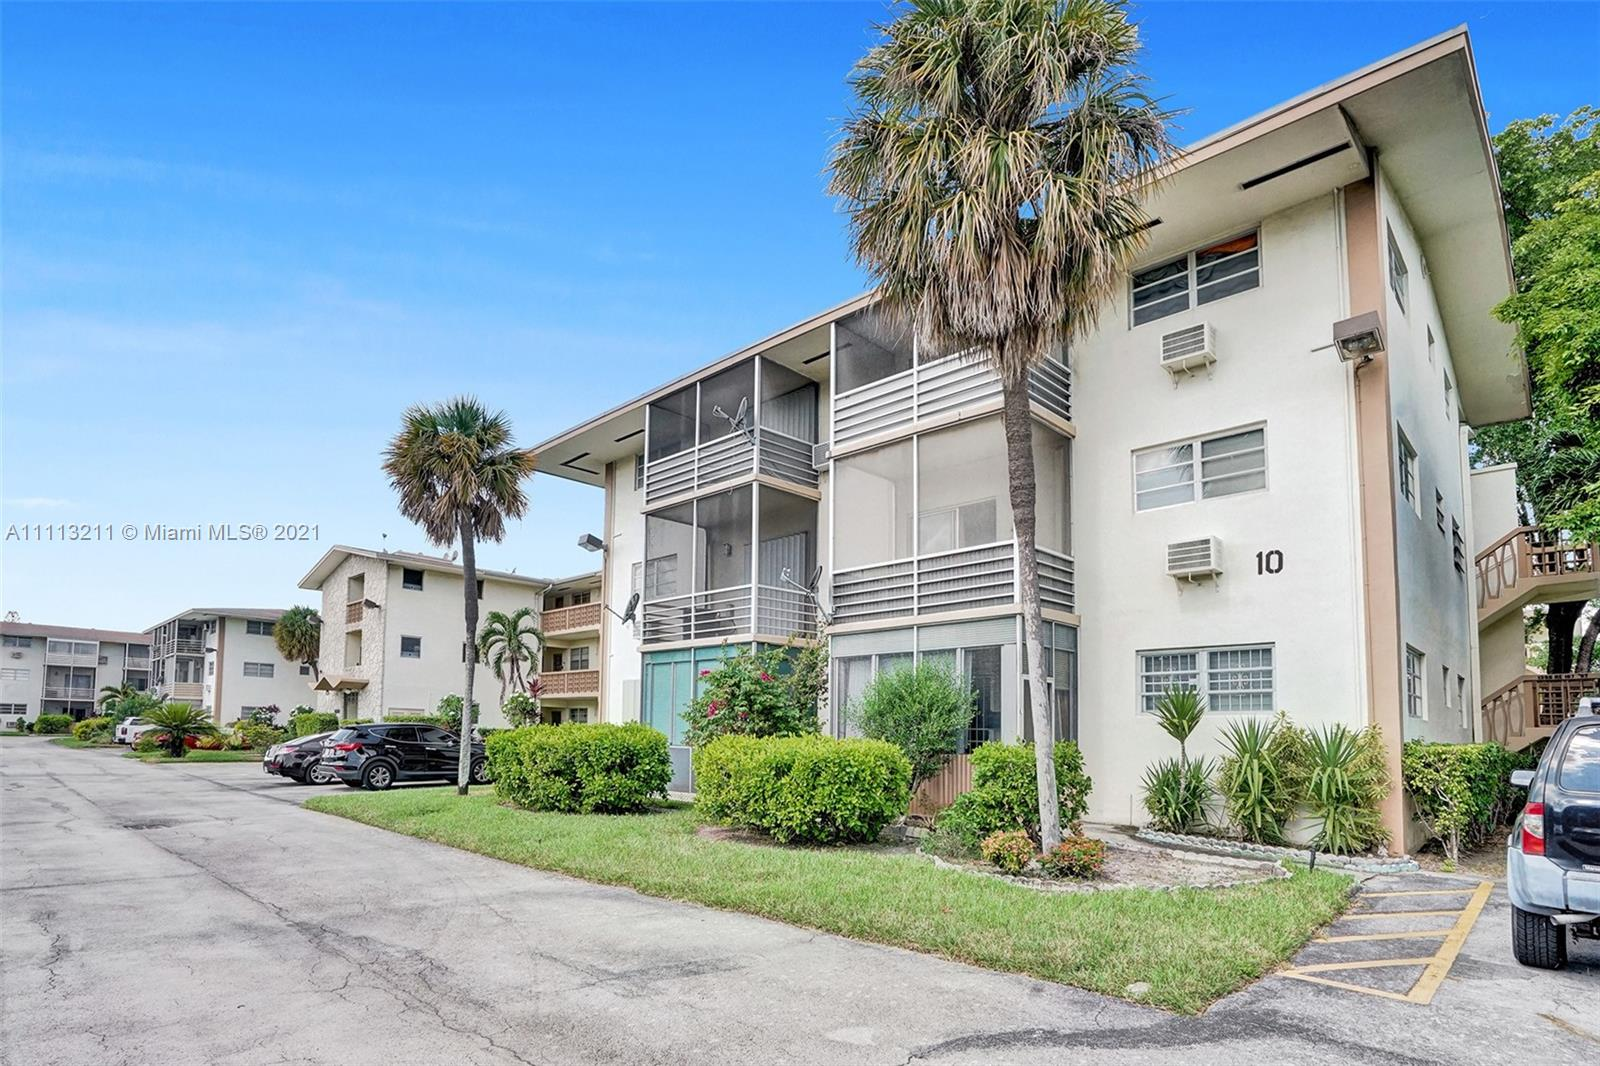 1395 NE 167th St #211, Miami, Florida 33162, 1 Bedroom Bedrooms, ,1 BathroomBathrooms,Residential,For Sale,167th St,A11113211